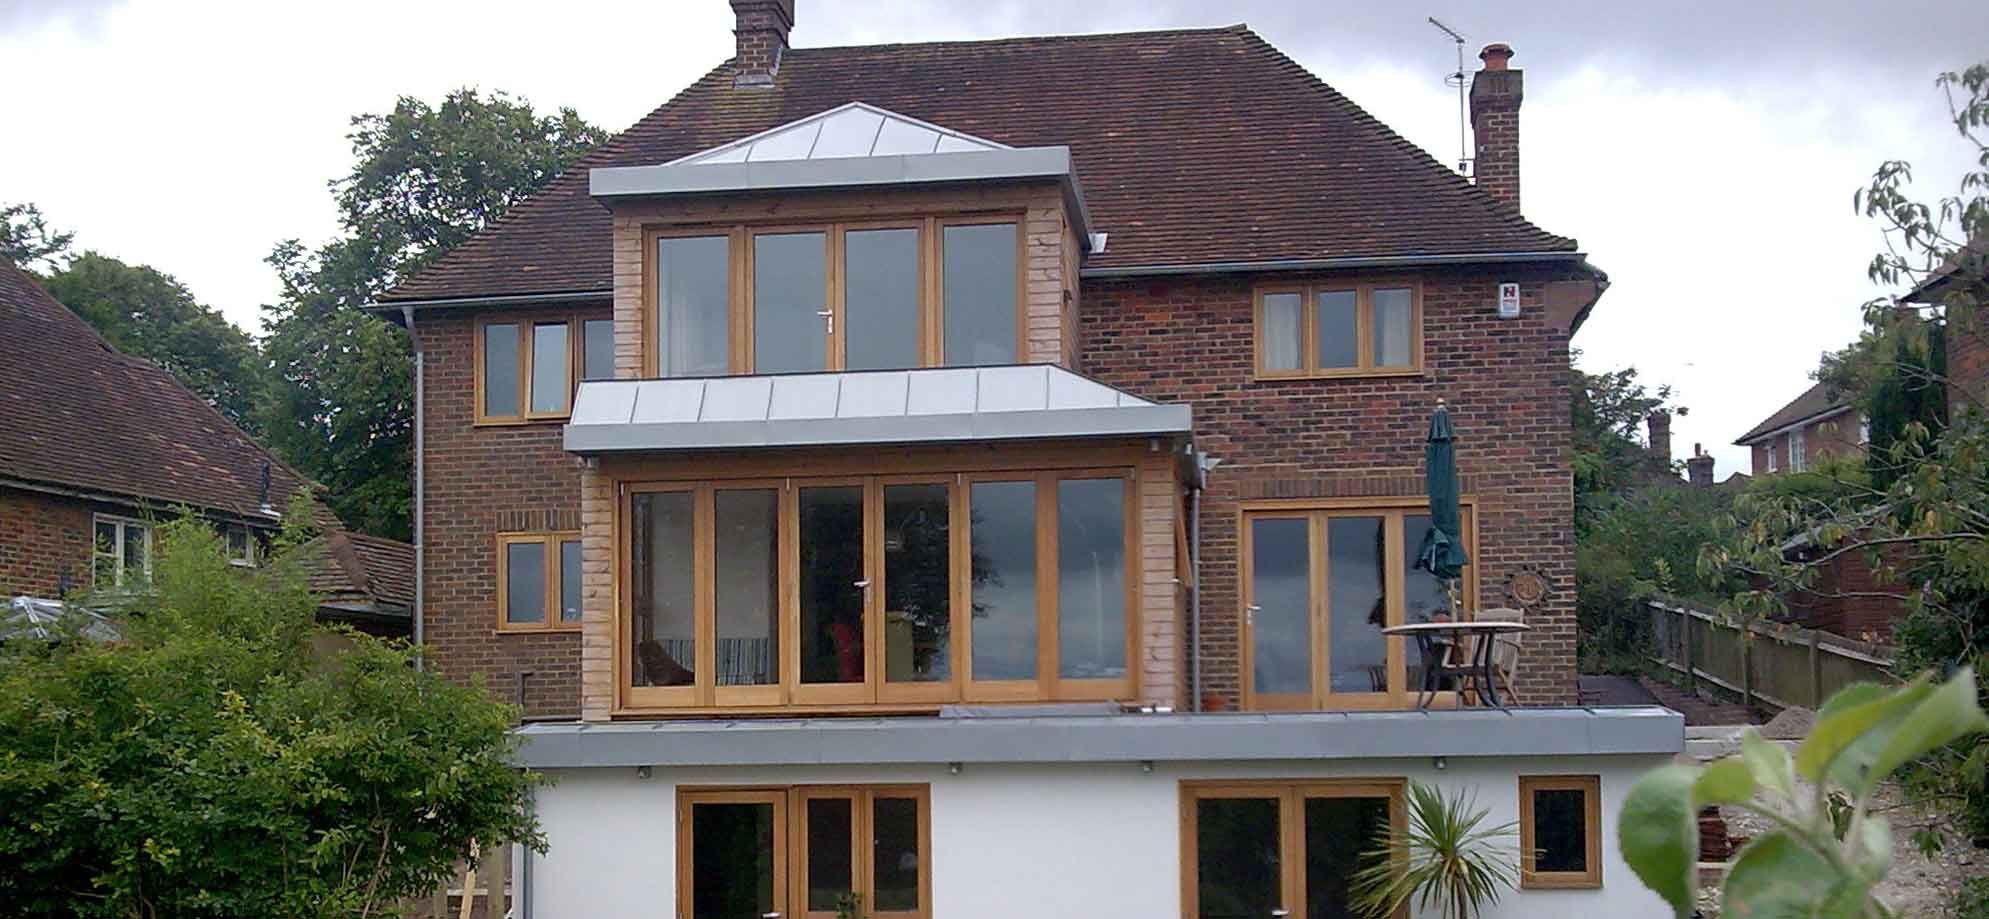 Zinc Roofing Facades And Guttering In Lewes Sussex